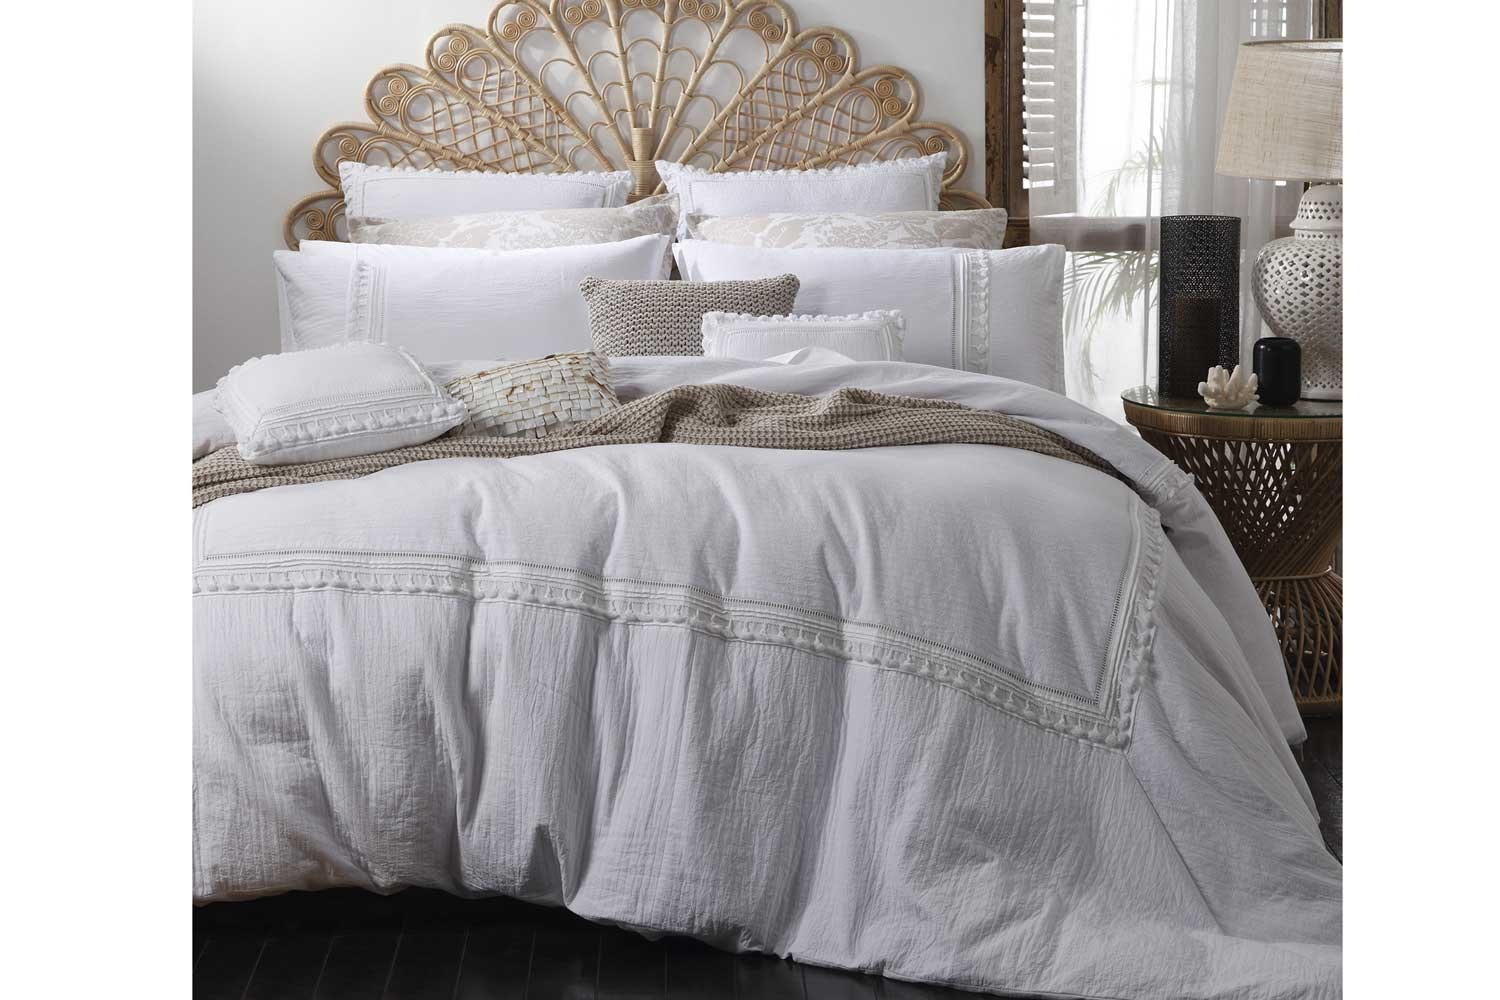 White Duvet Cover - Amirah